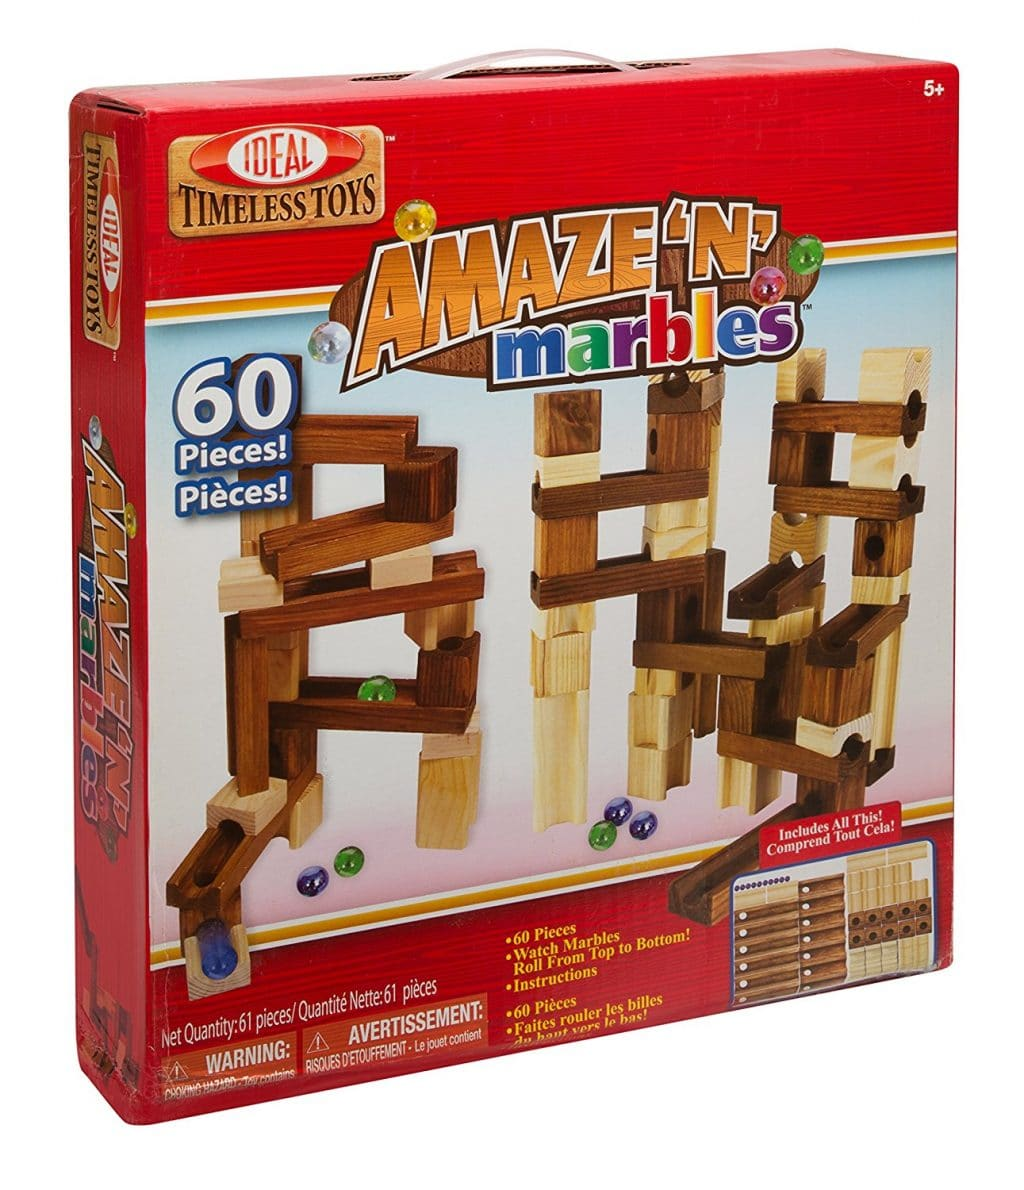 Wooden Marble Run Set Only $21.97! (31% Off!)